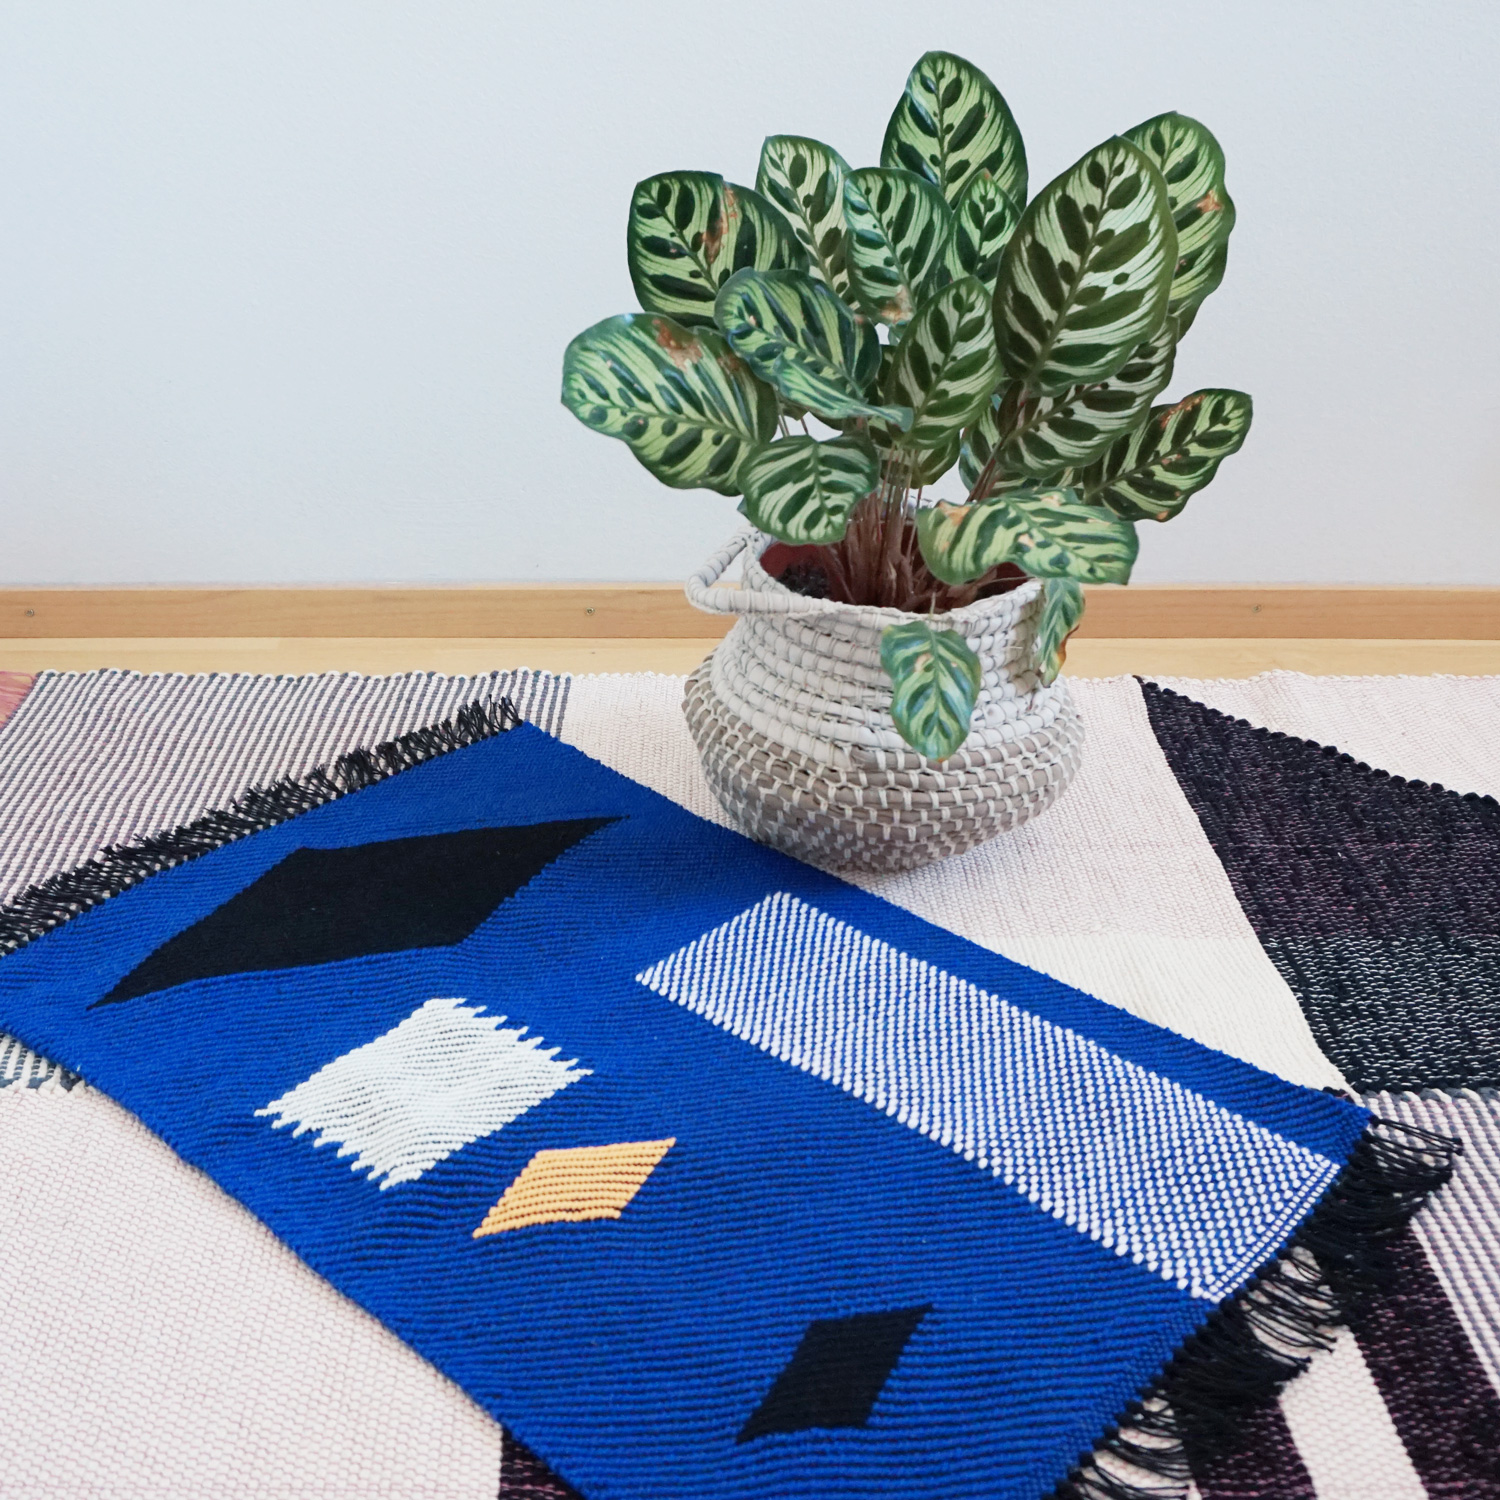 A bright cobalt blue mini rug with some fun shapes in black, orange and blush pink.